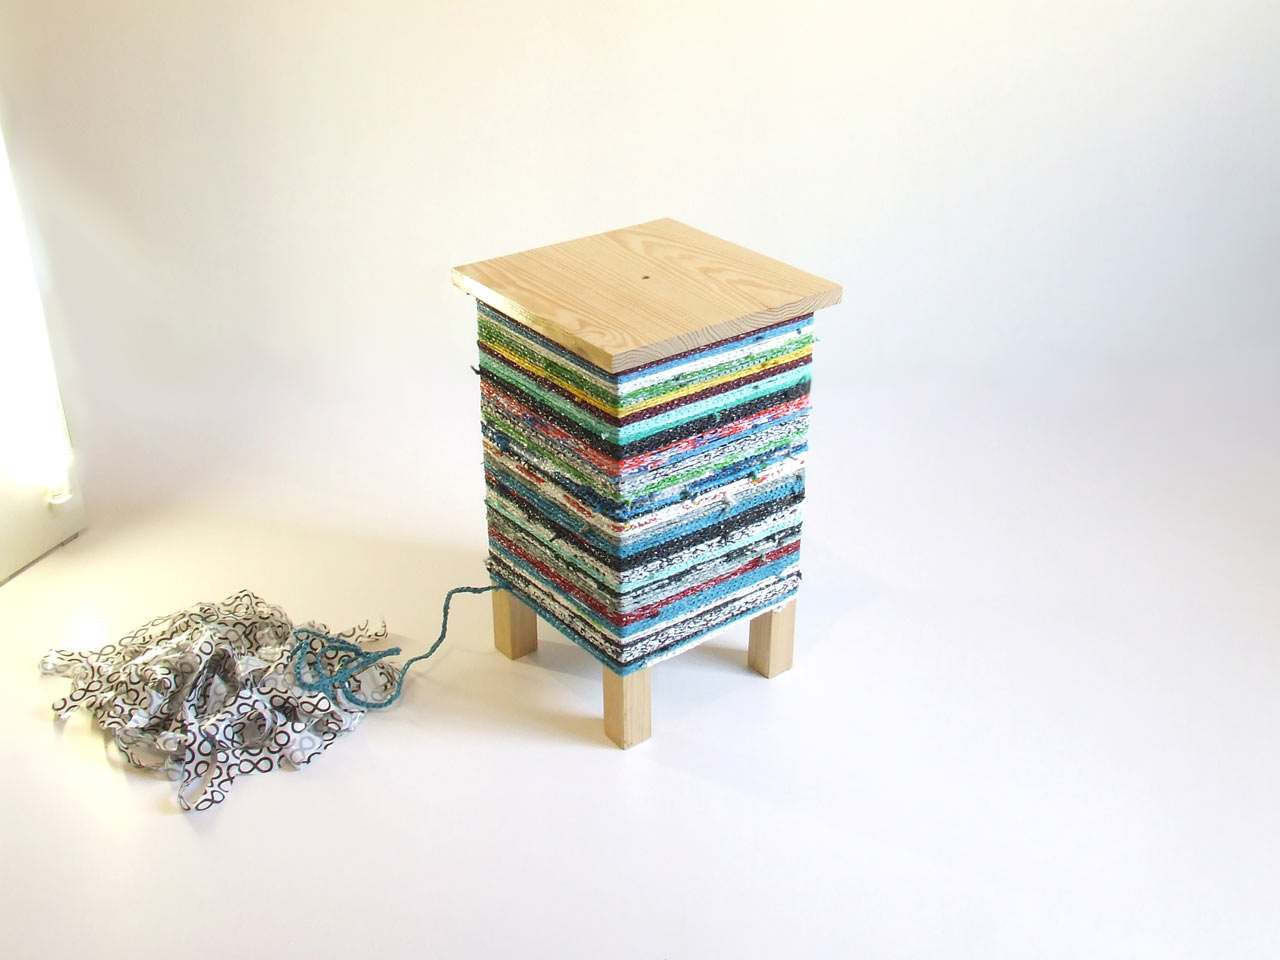 Table Covered with Crocheted Plastic Bags